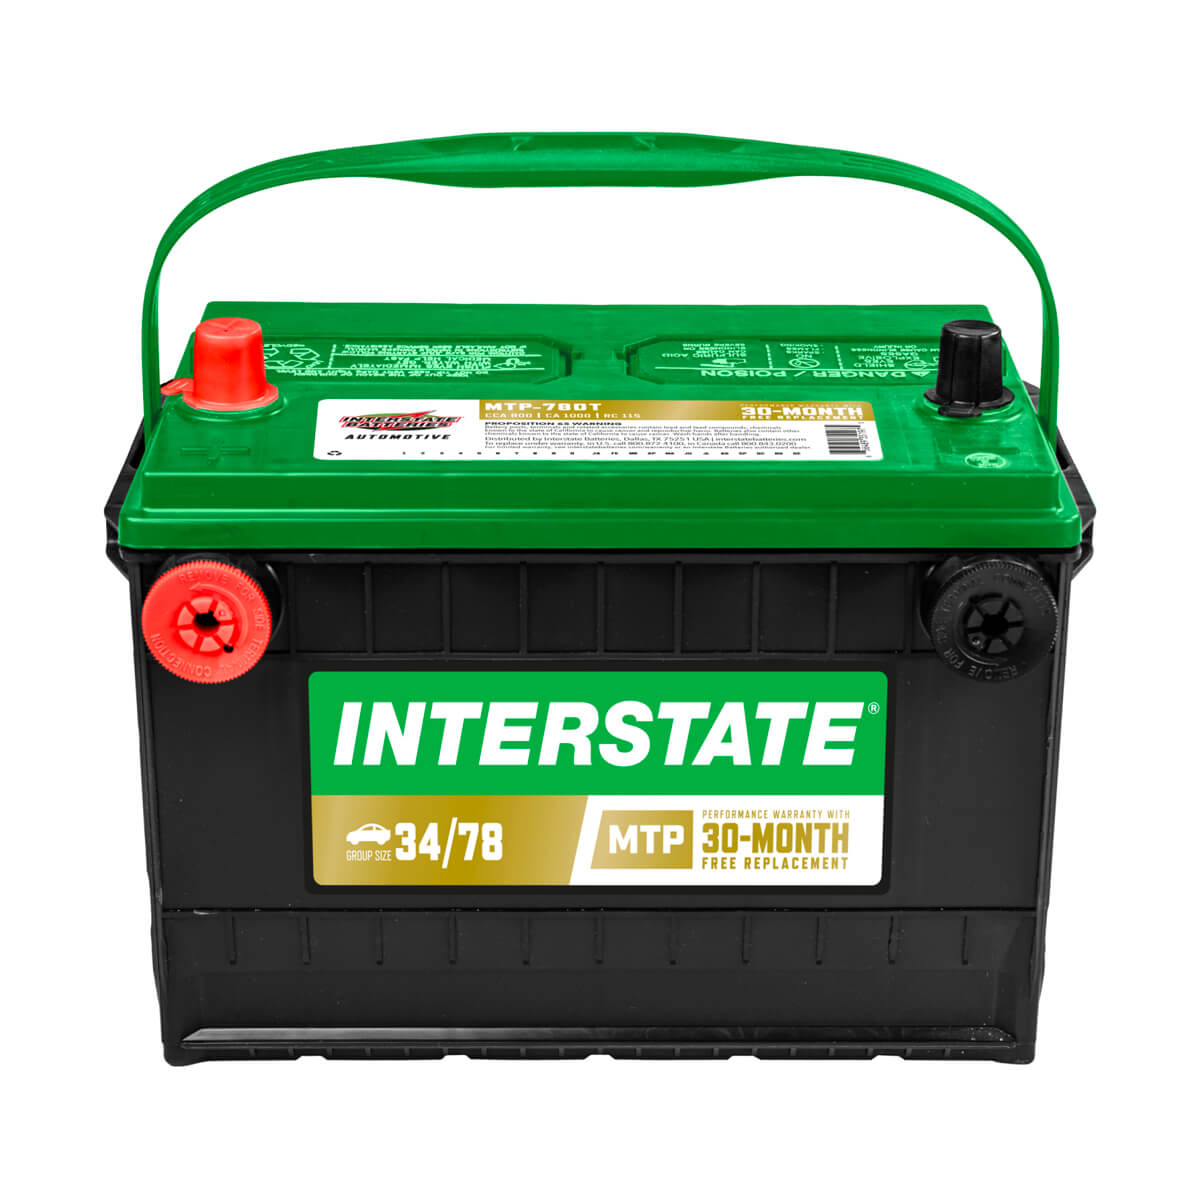 Interstate Auto/Truck/SUV Battery - MTP-78DT